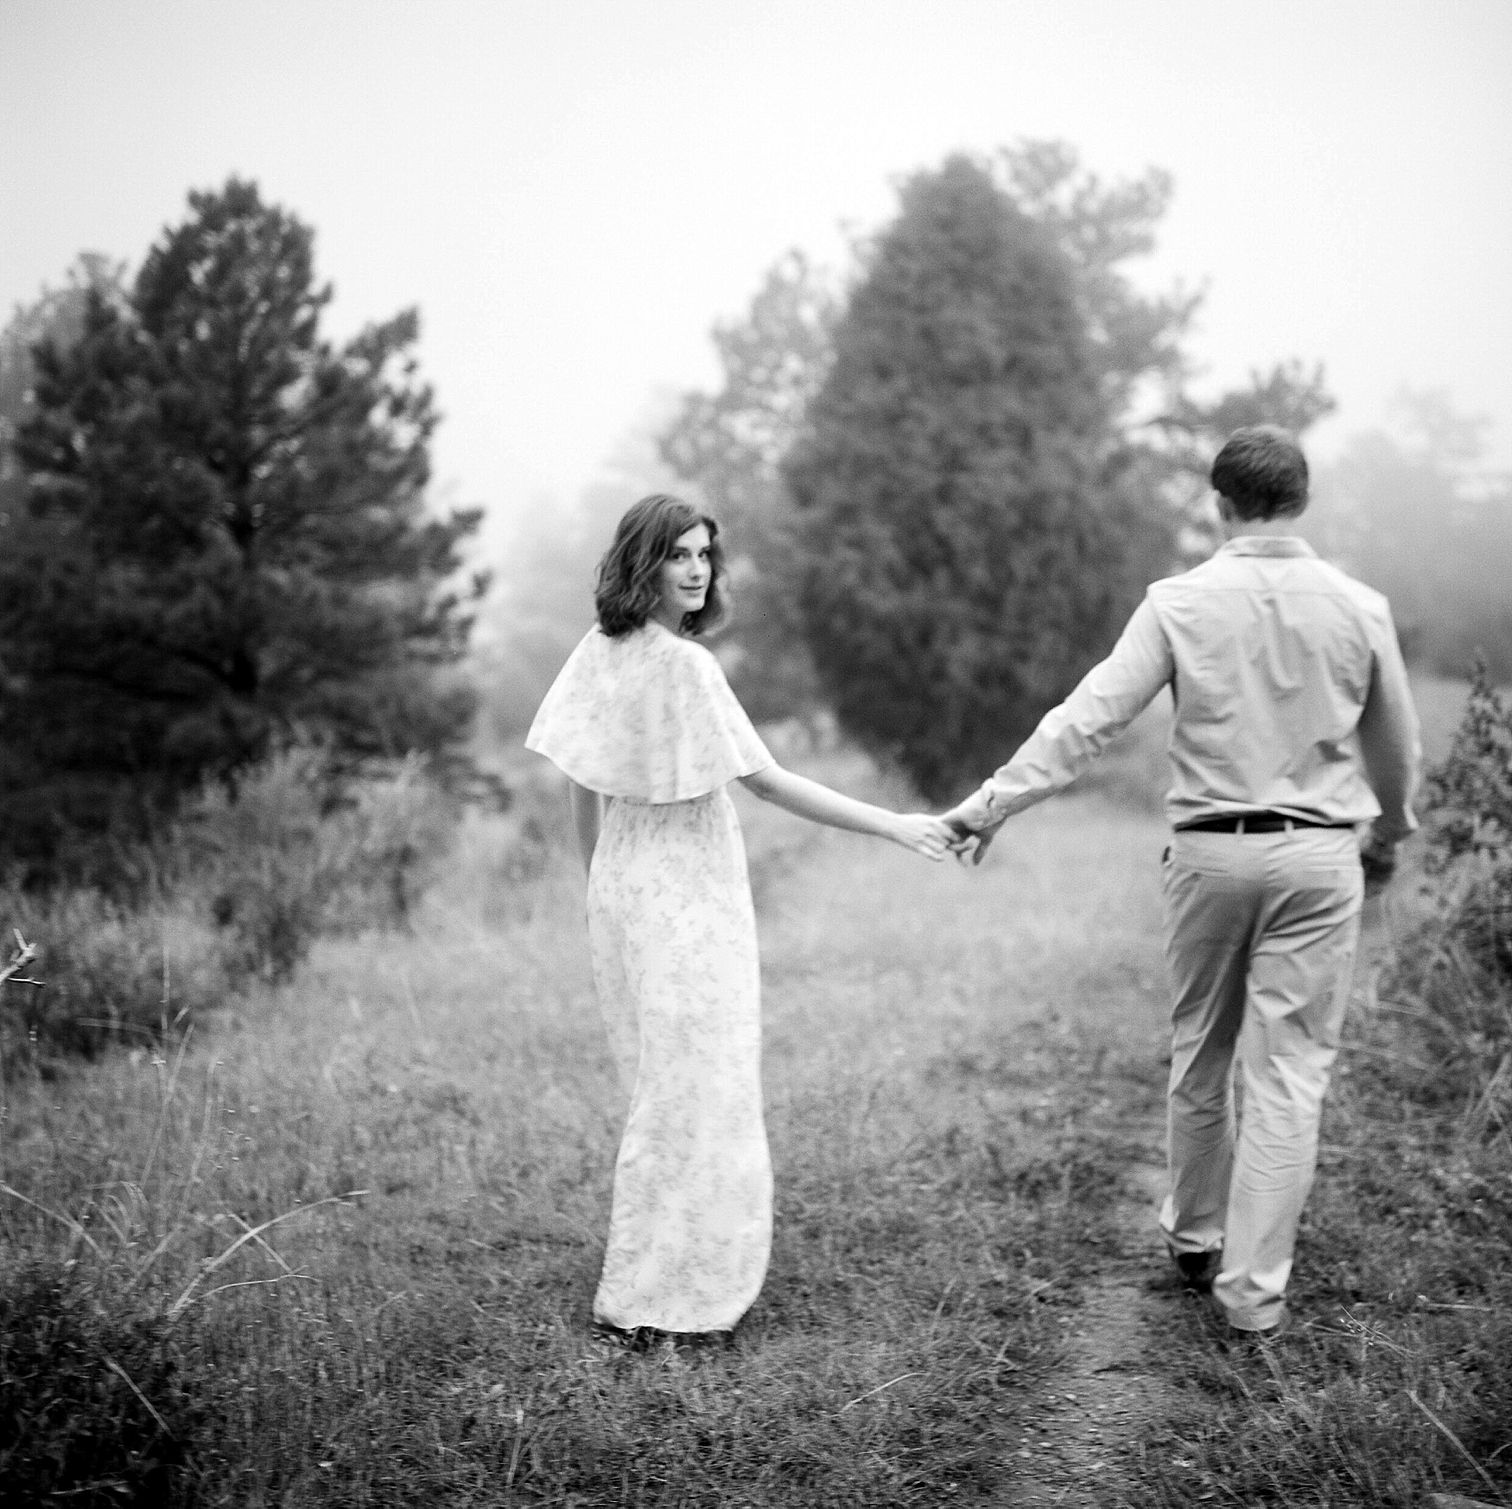 Colorado Engagement Photography, Colorado Engagement Photos, Denver Wedding Photographer, Engagement Photos In Colorado, Film Photographers In Colorado, Rolleiflex Portraits, Film Wedding Photographers, Best Engagement Photos In Colorado, Danielle DeFiore Photographers, Black And White Photos Of Engaged Couple, Couple Holding Hands